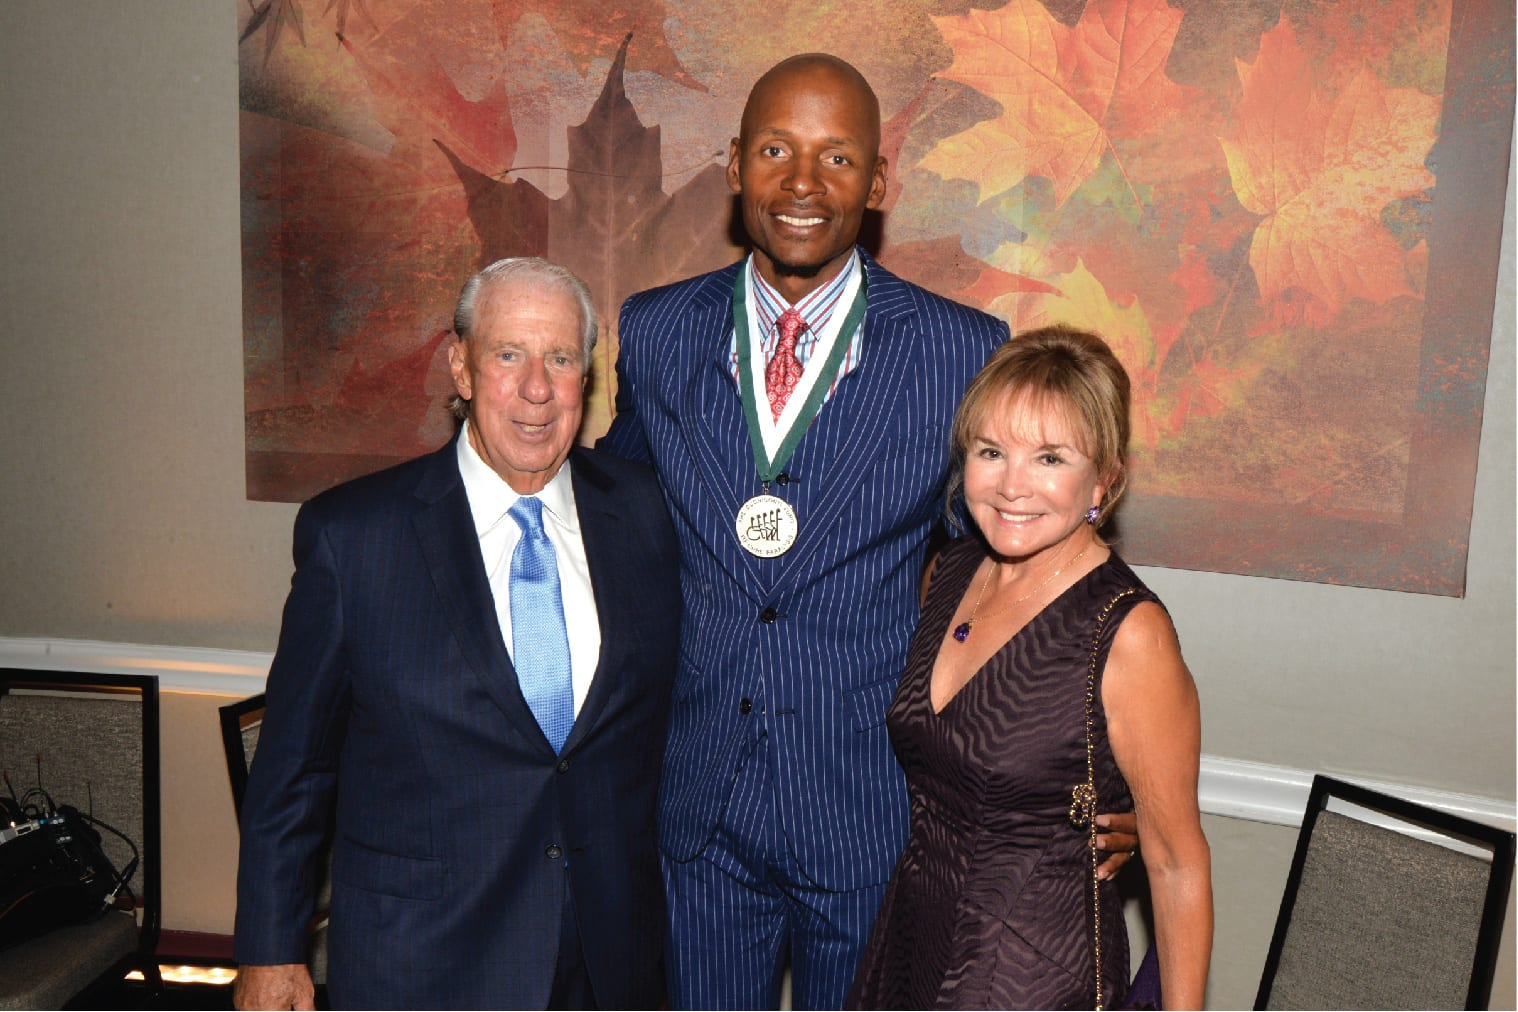 Paul and Swanee DiMare with Ray Allen